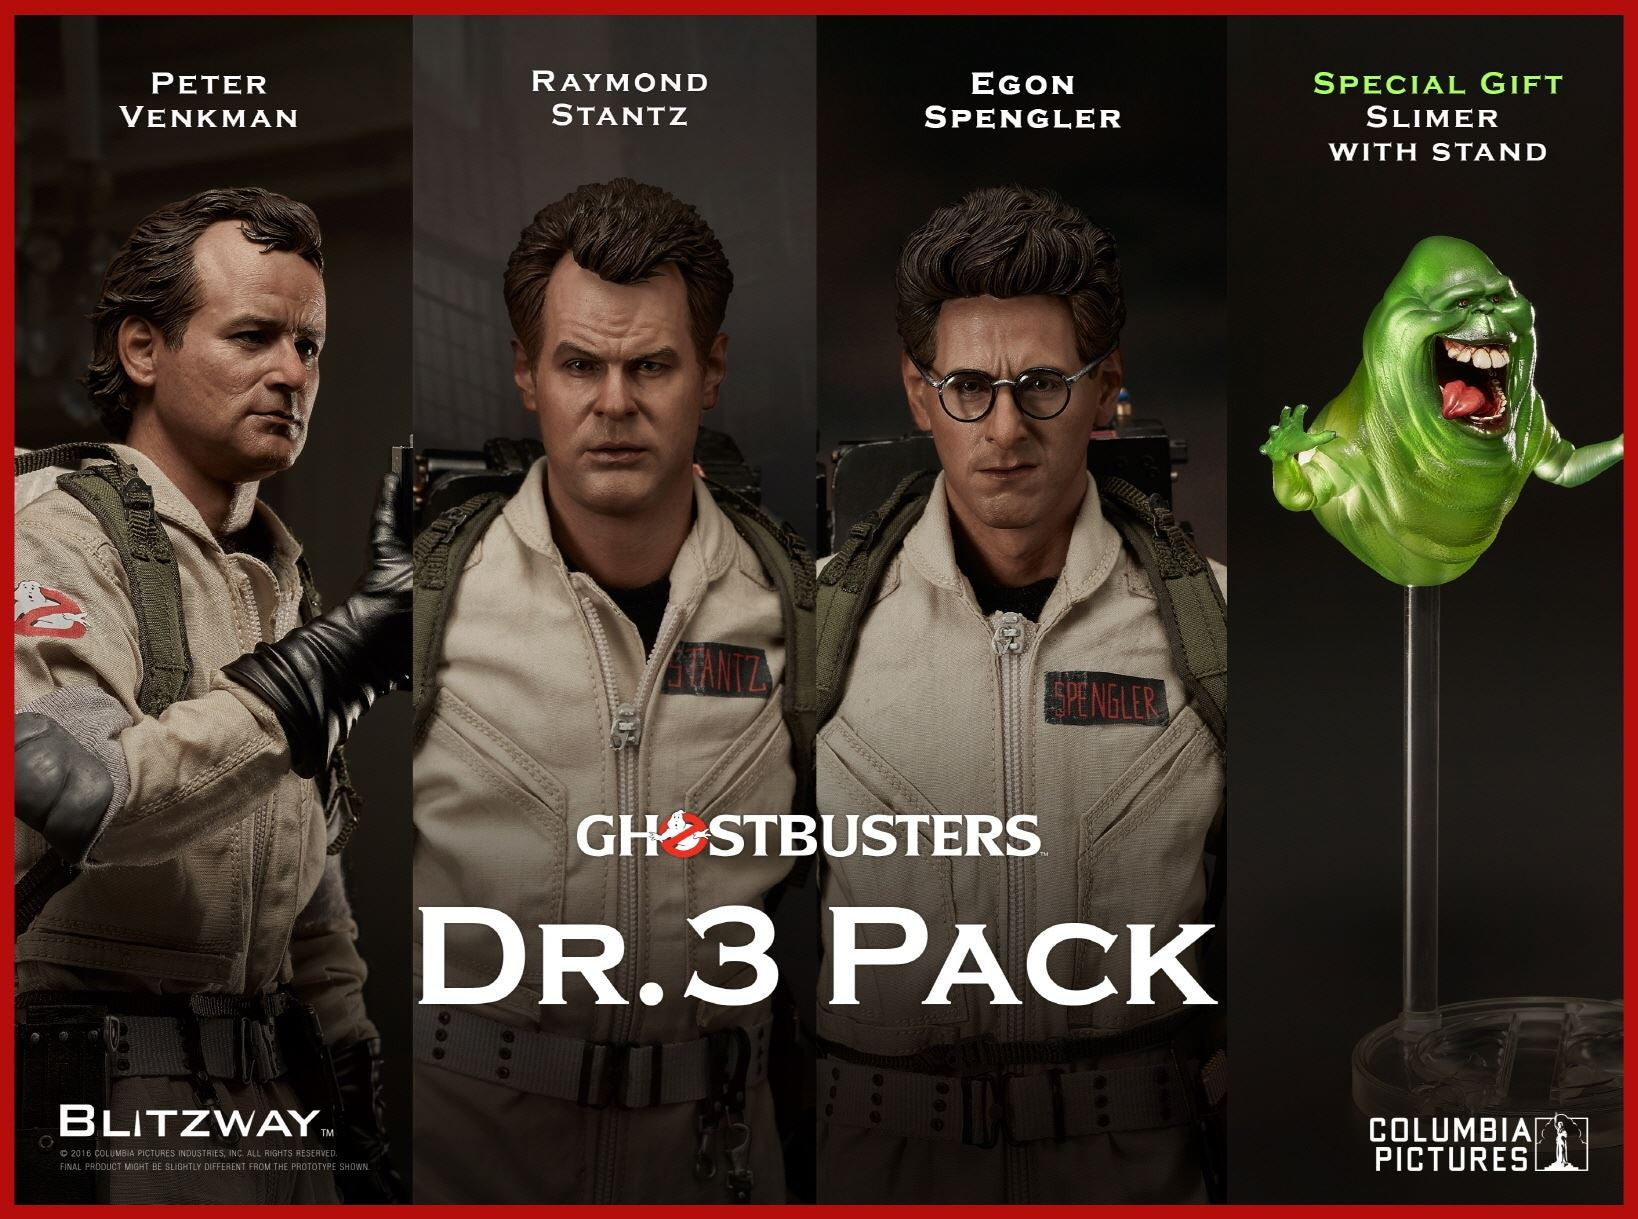 Blitzway - Ghostbusters 1984 Dr. 3 Pack - Marvelous Toys - 1